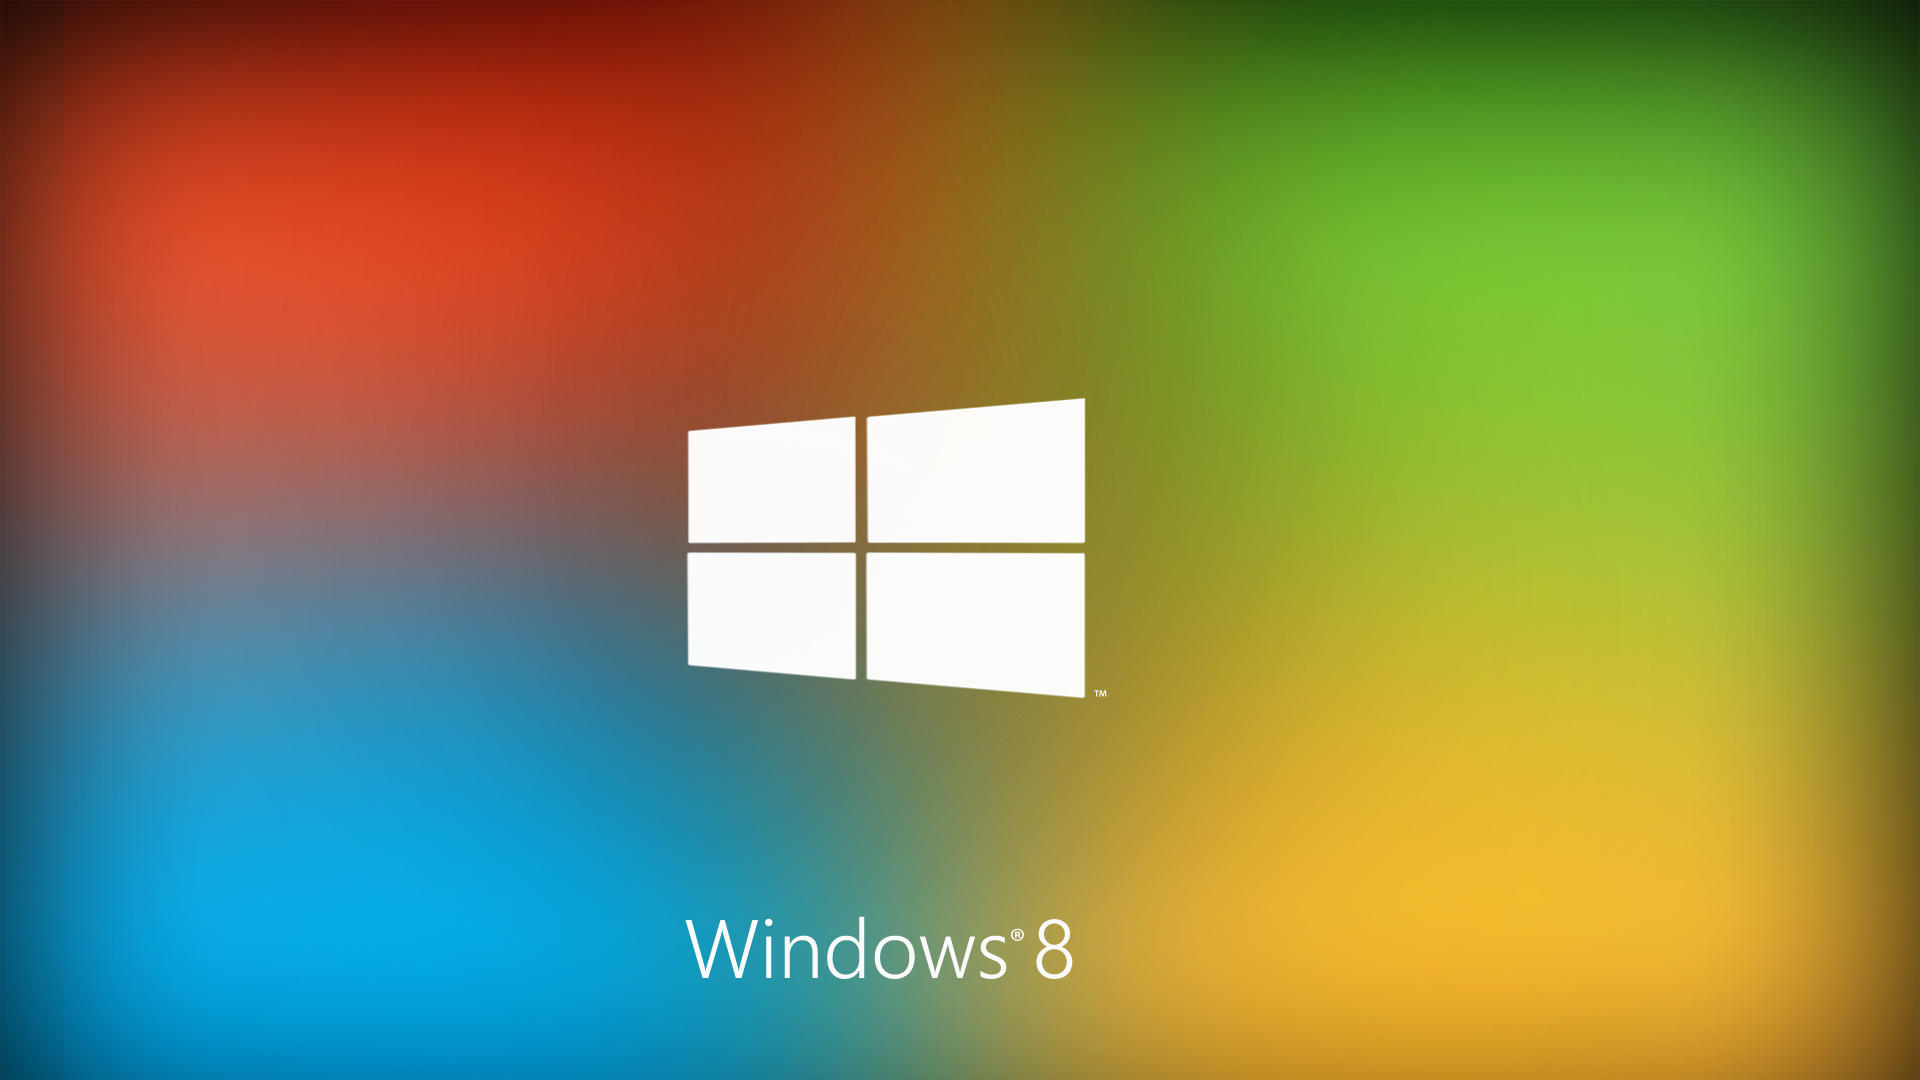 windows 8 wallpaper pack by brebenel silviu on deviantart